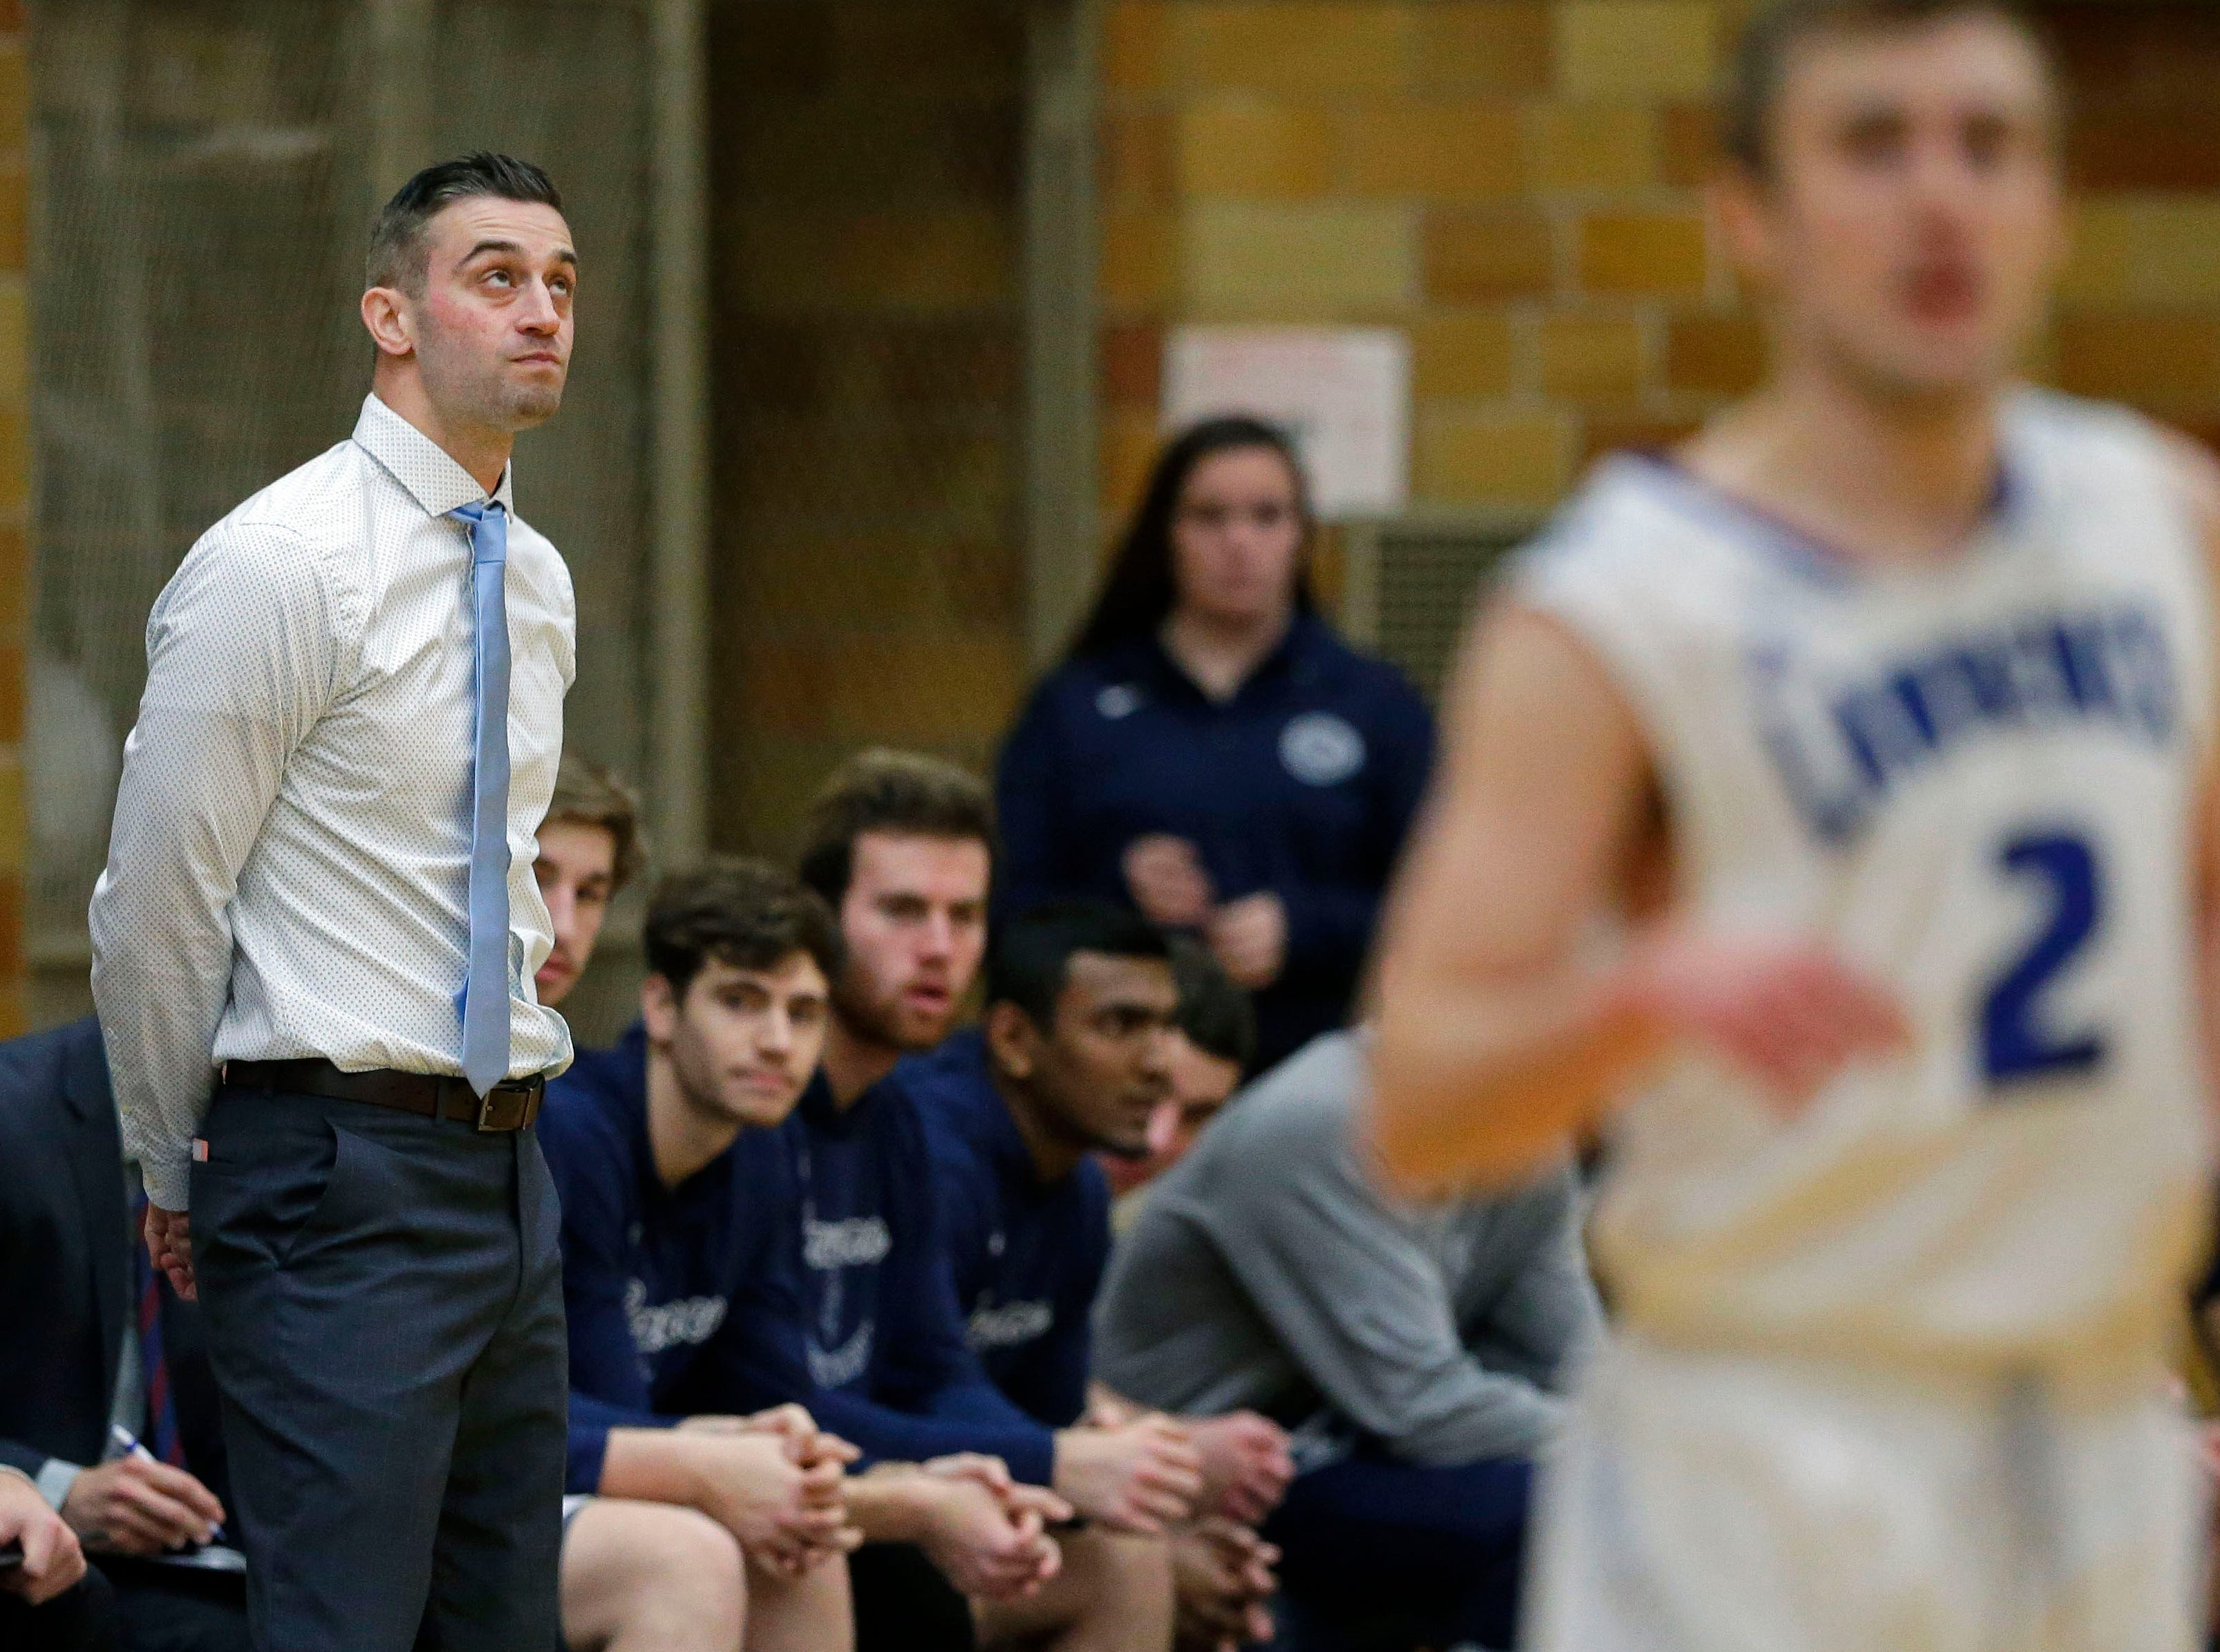 Lawrence University coach Zach Filzen glances at the scoreboard as the Vikings take on MSOE Saturday, November 17, 2018, at Alexander Gym in Appleton, Wis.